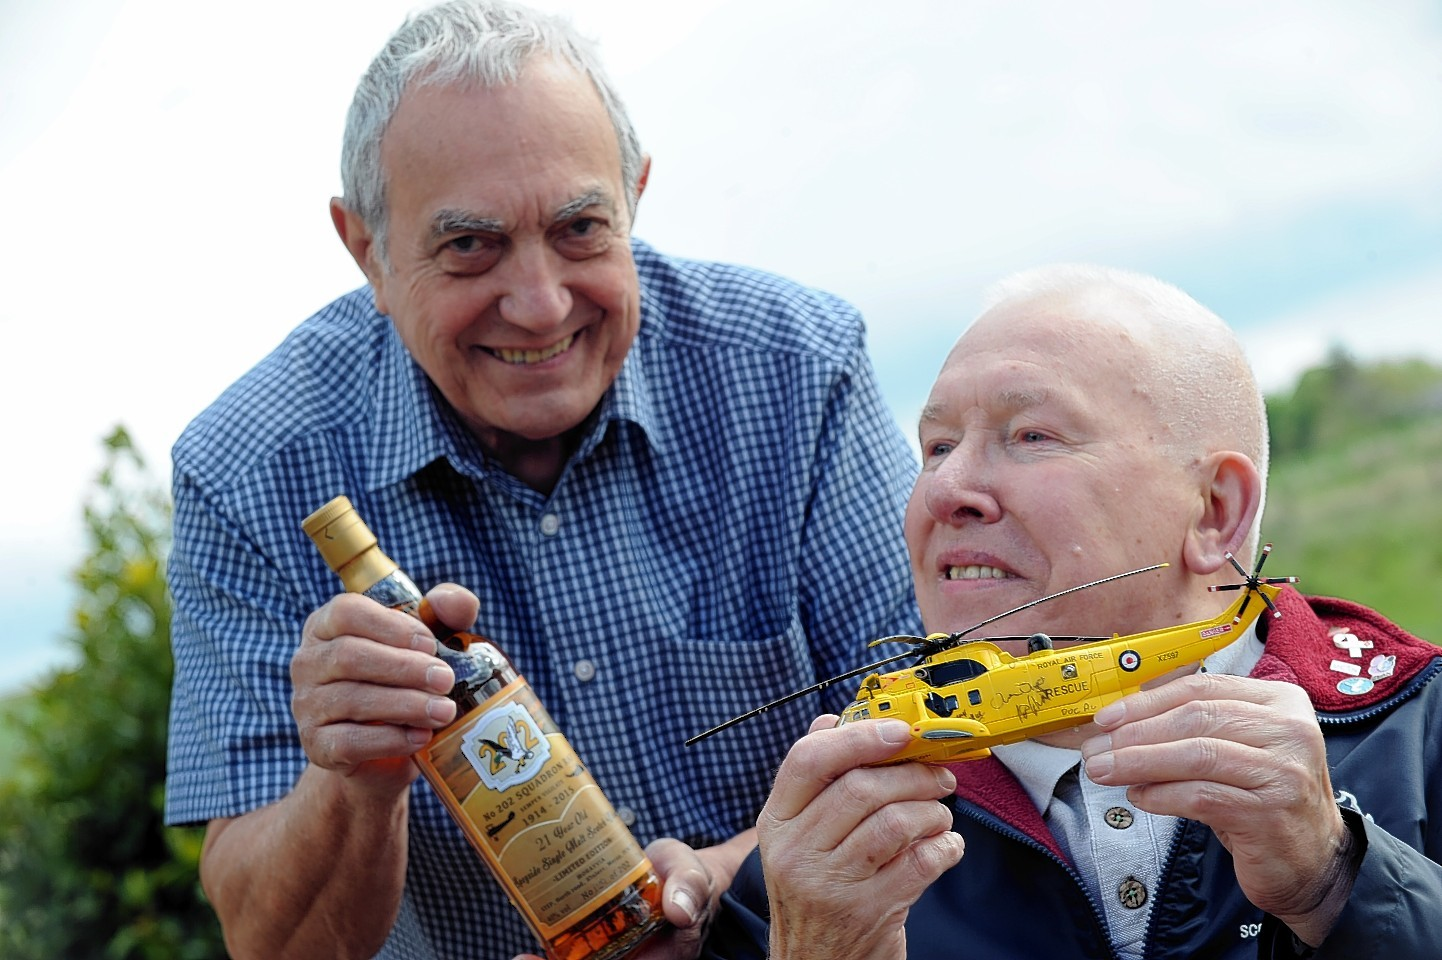 Rob Matthews with the Seaking model he's donating to Mrayvia to be auctioned and Bob Pountney with the bottle of 202 Squadron whisky, also to be auctioned. Picture by Gordon Lennox